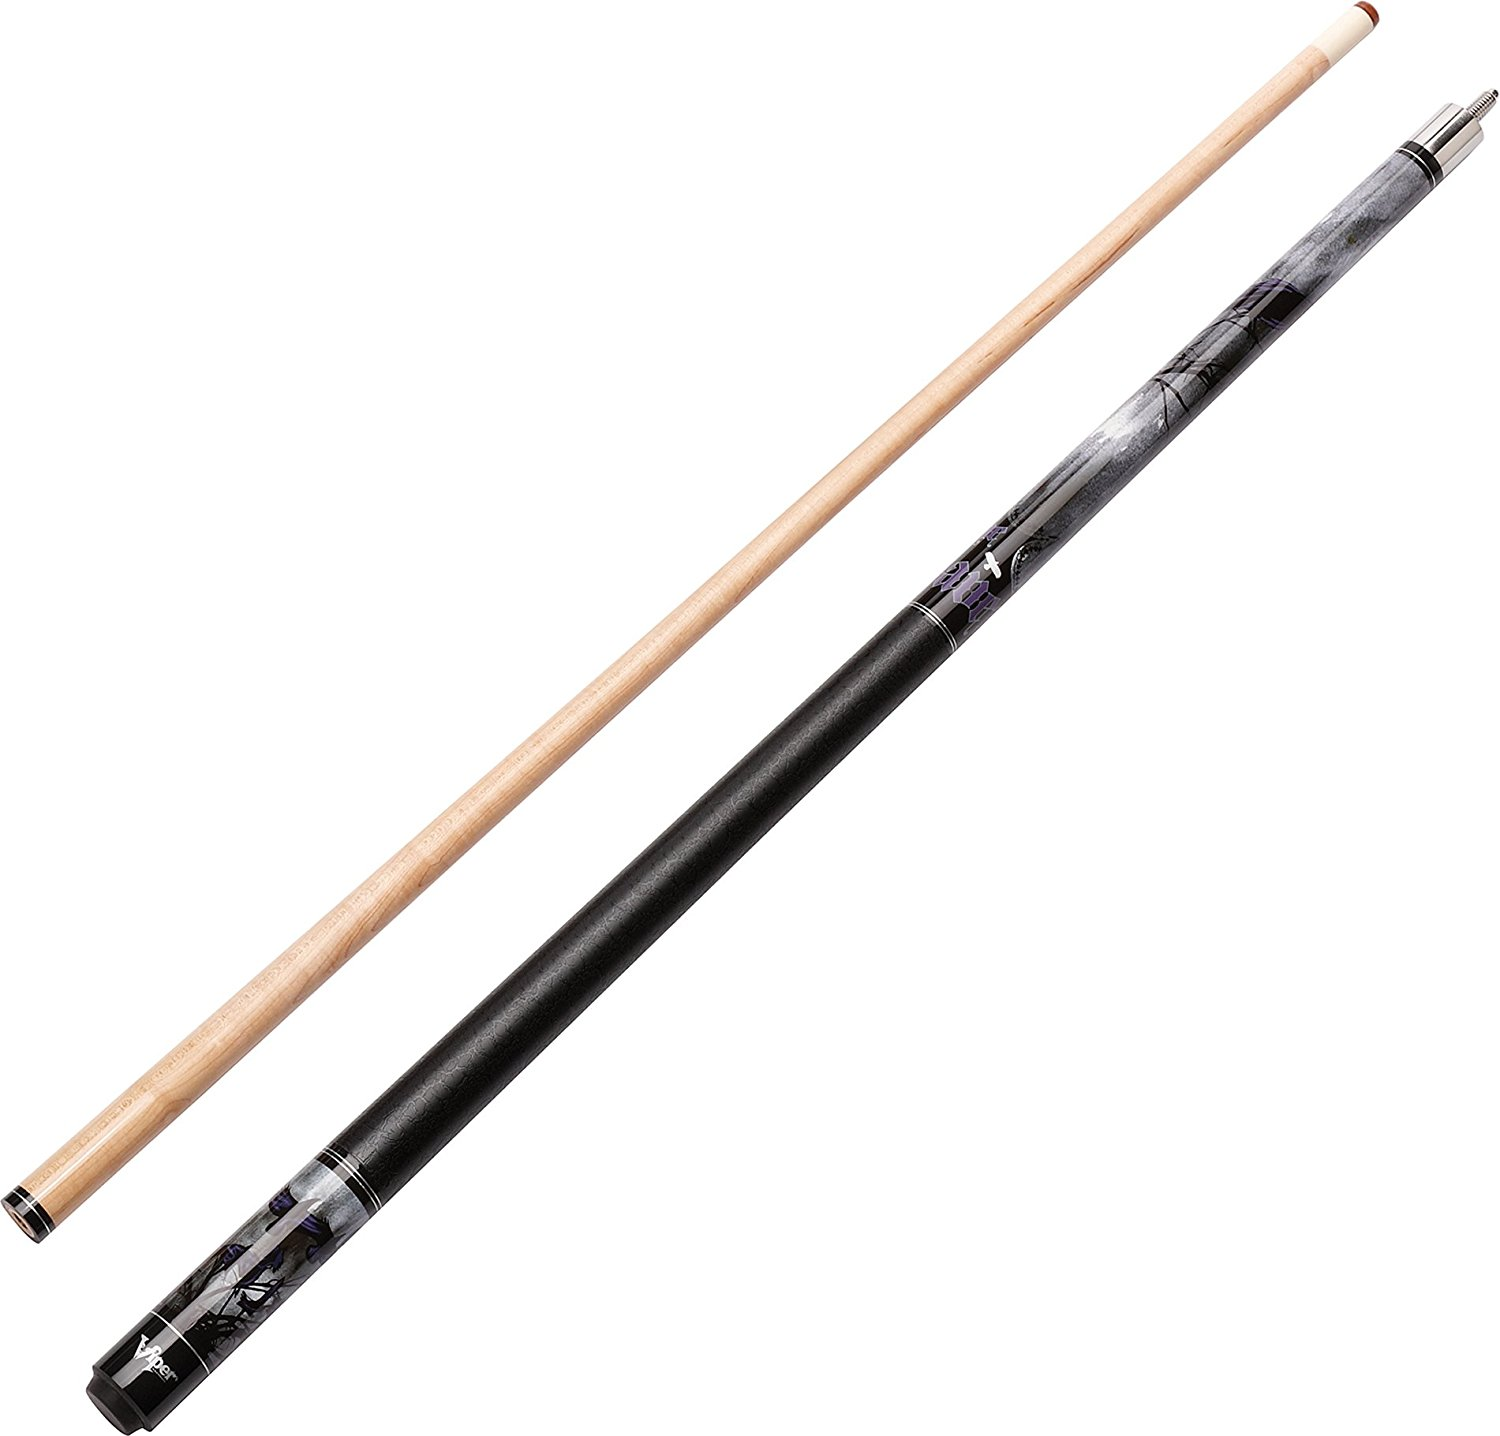 Best Pool Cues For money buying Guide